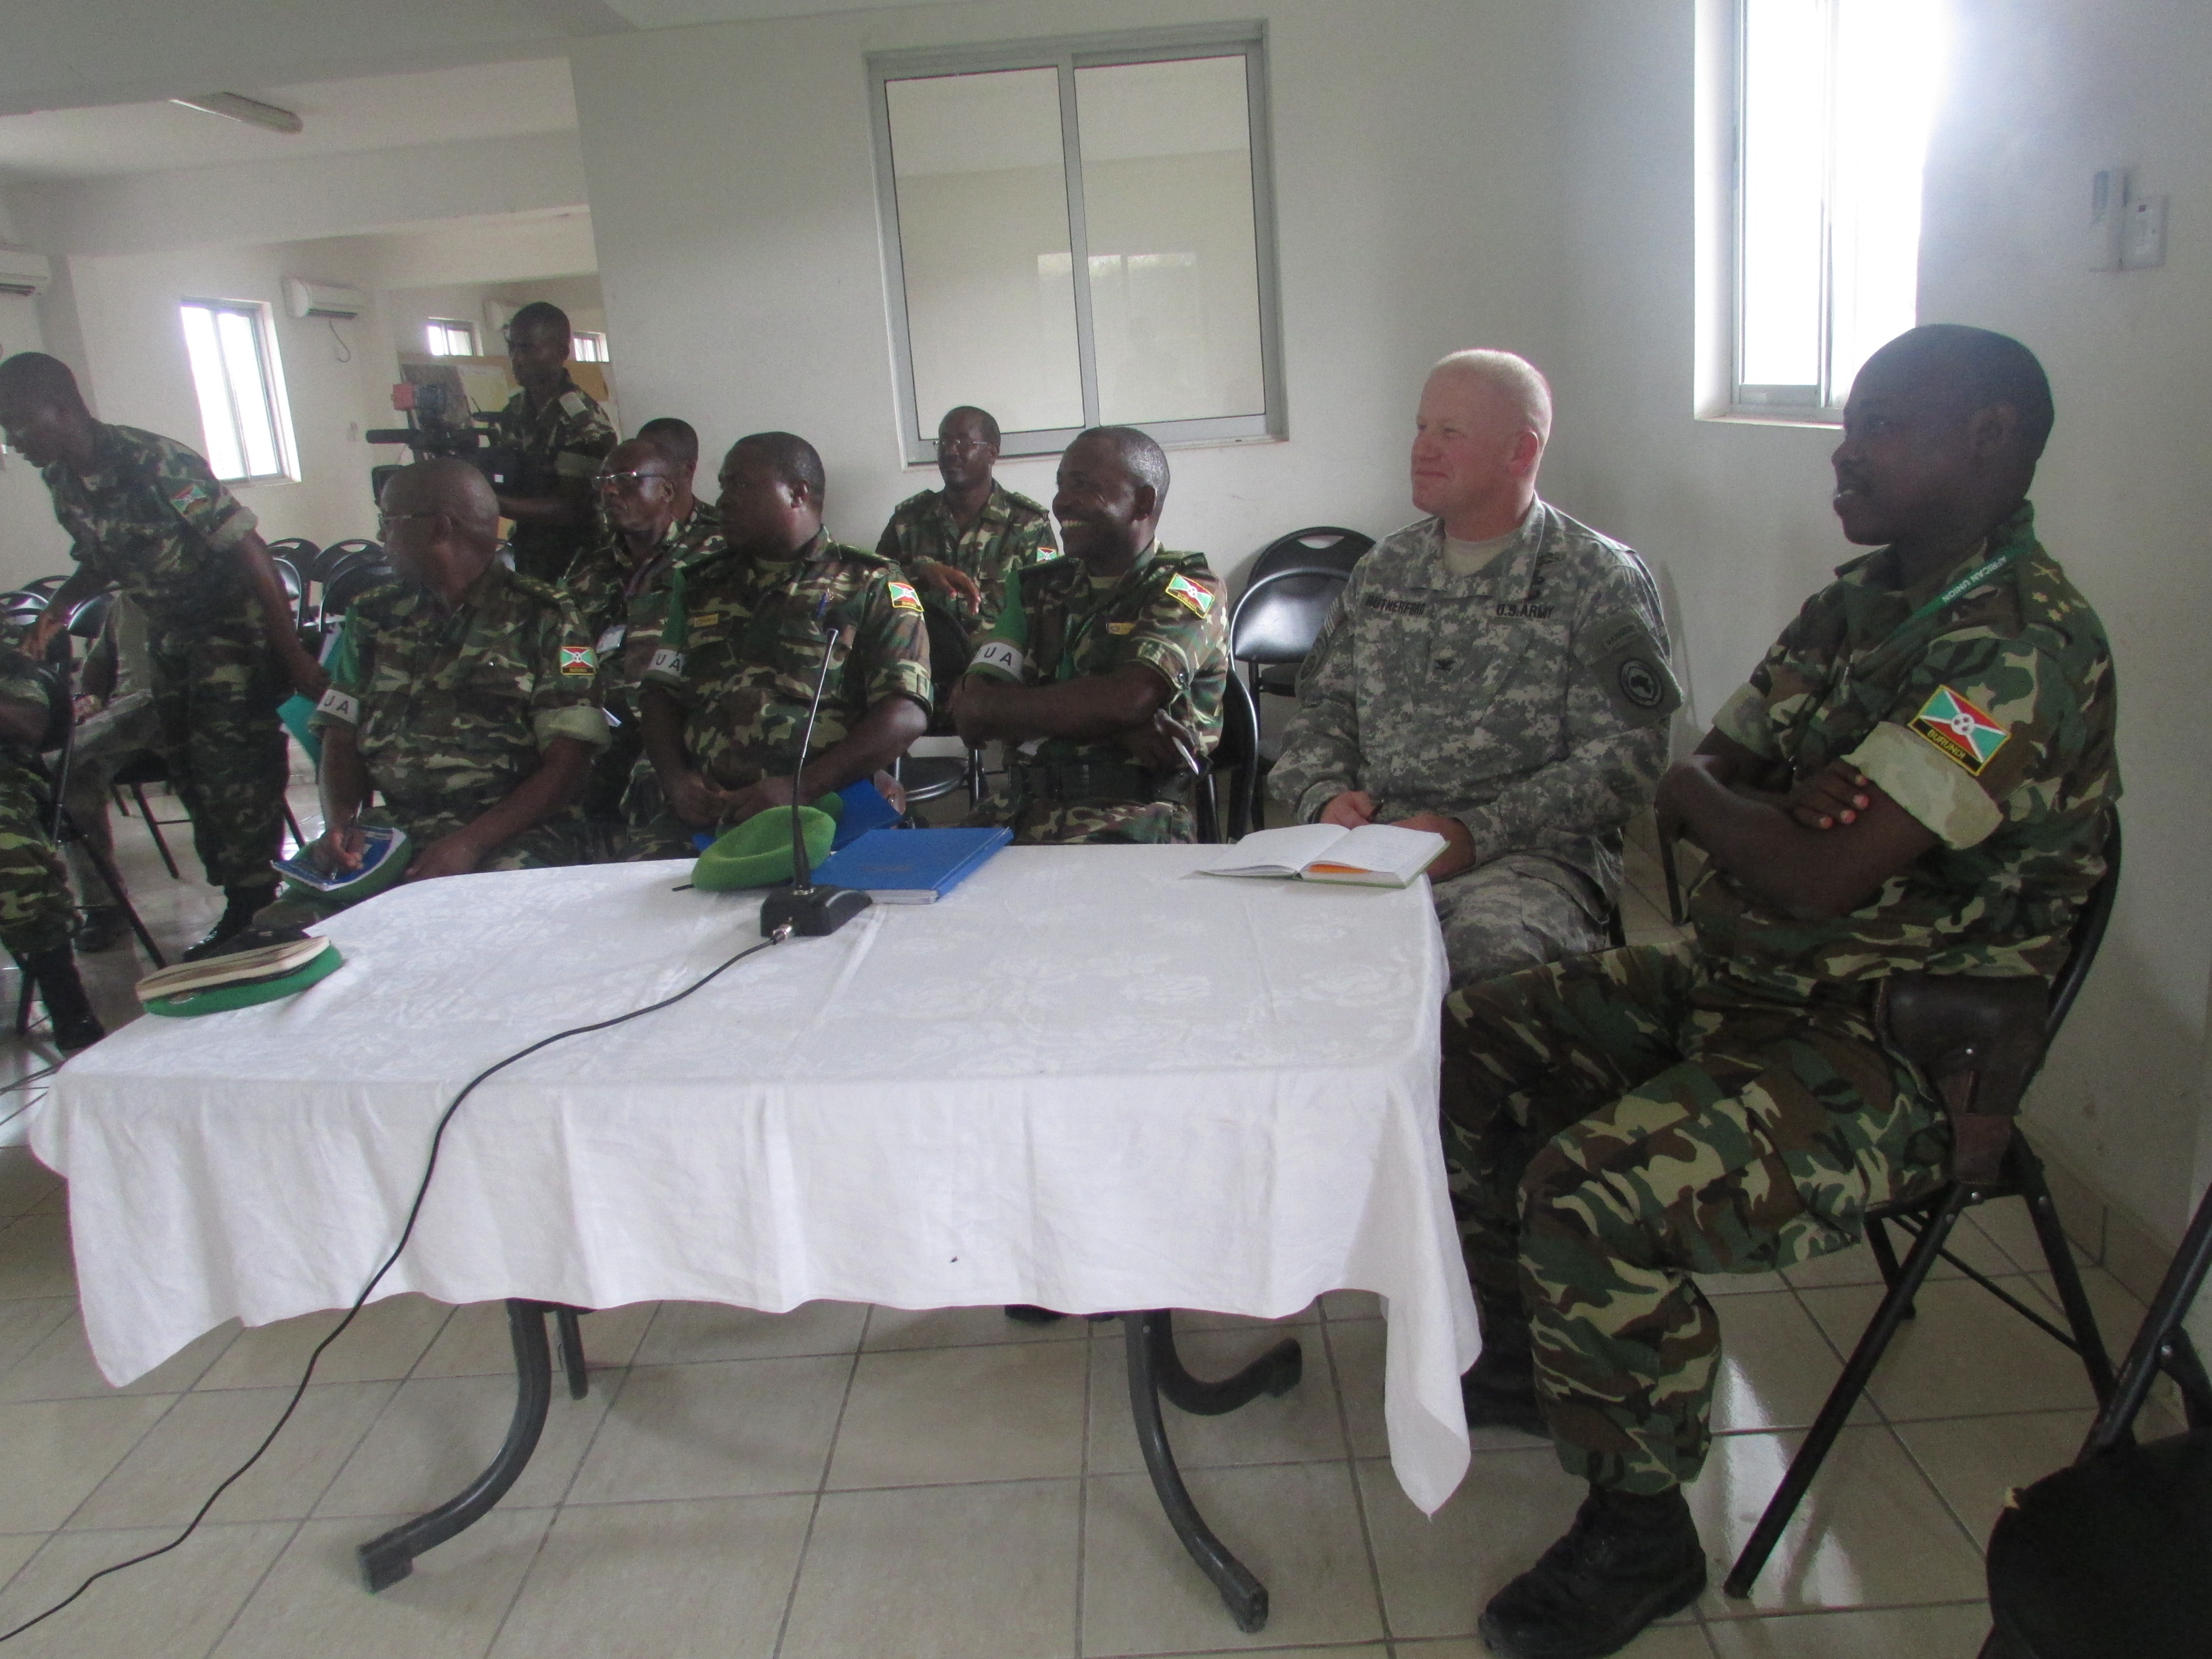 U.S. Army Col. Wilson Rutherford, U.S. Military Coordination Cell Mogadishu and Col. Bibonimana, Burundi National Defense Forces right, receive an Operations and Intelligence update from the BNDF staff offensive during a visit to the African Union Mission in Somalia Sector 5 Headquarters located in northern Mogadishu.  The MCC's mission is to increase defense capability, capacity, and coordination among its East African partner in their pursuit to neutralize violent extremist organizations.  (BNDF Courtesy Photo)